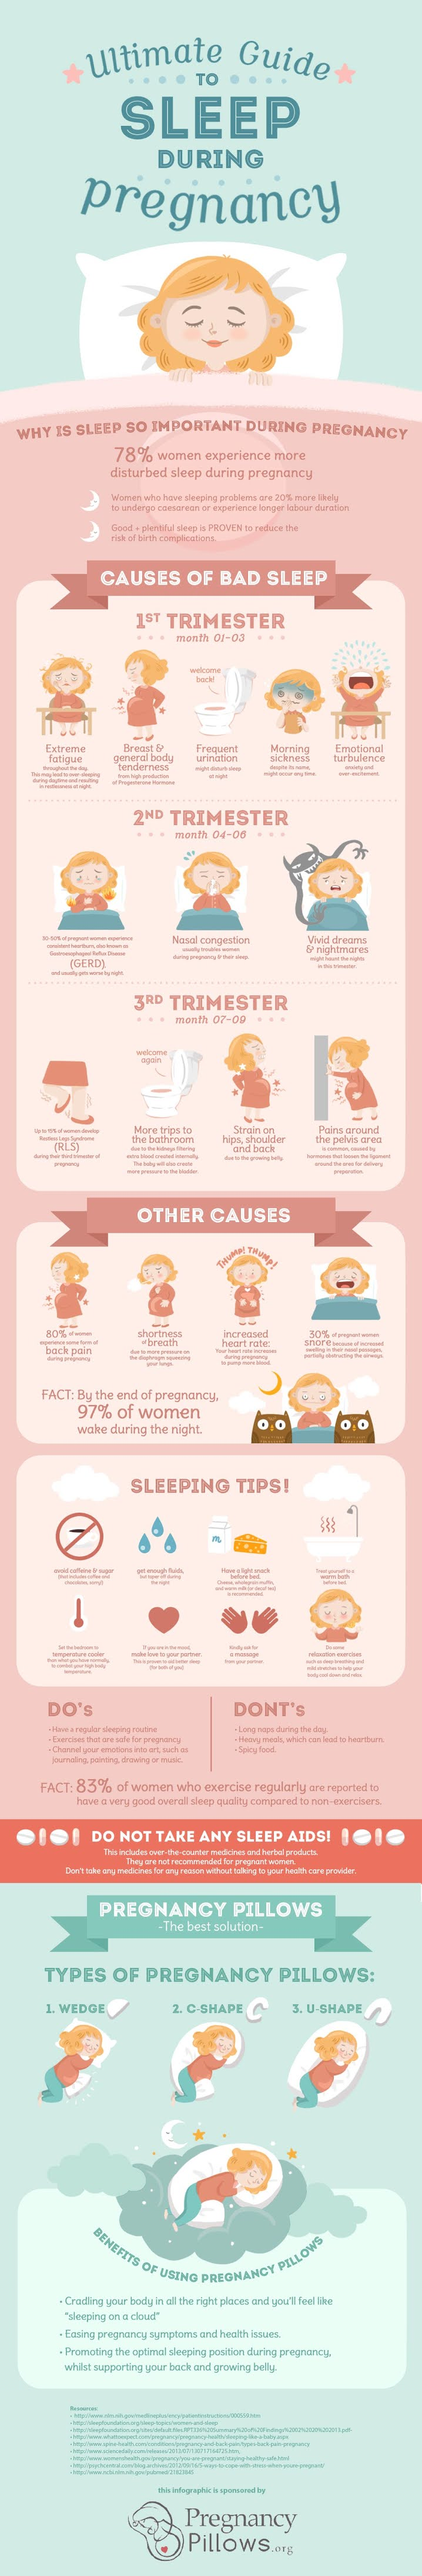 The ultimate guide to sleep during pregnancy #infographic